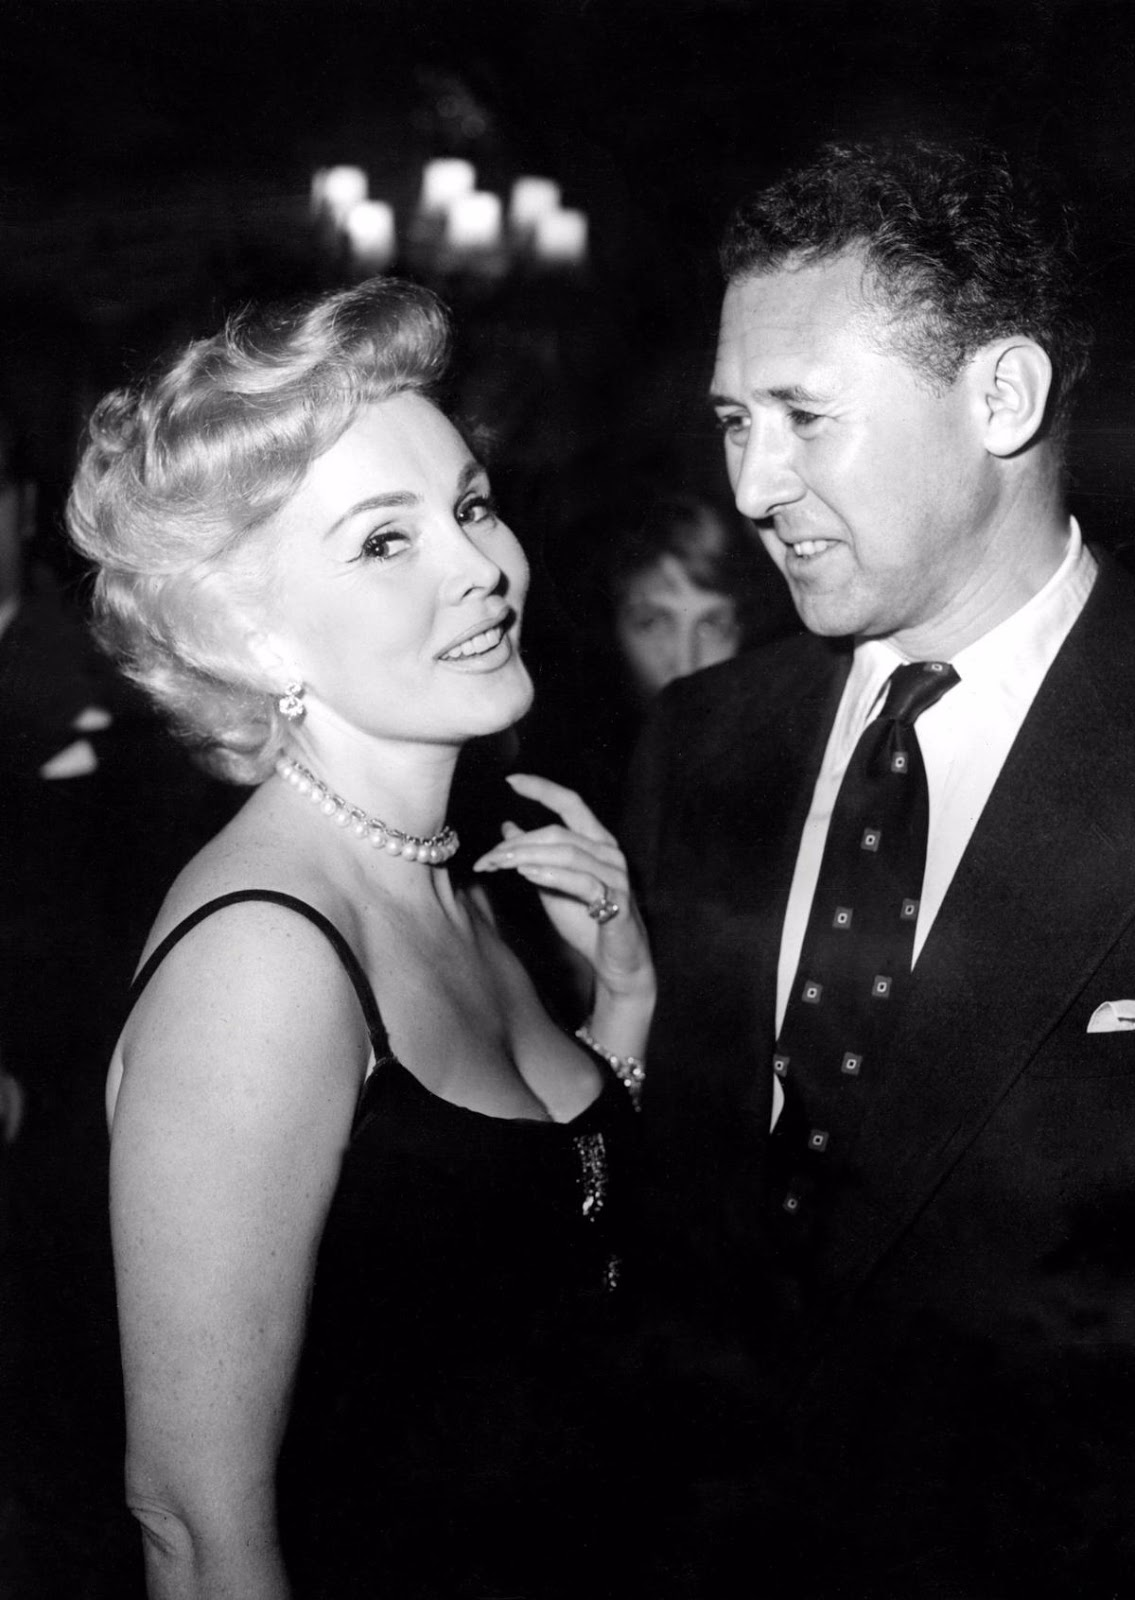 Goodbye Zsa Zsa Gabor Here Are 30 Beautiful Black And